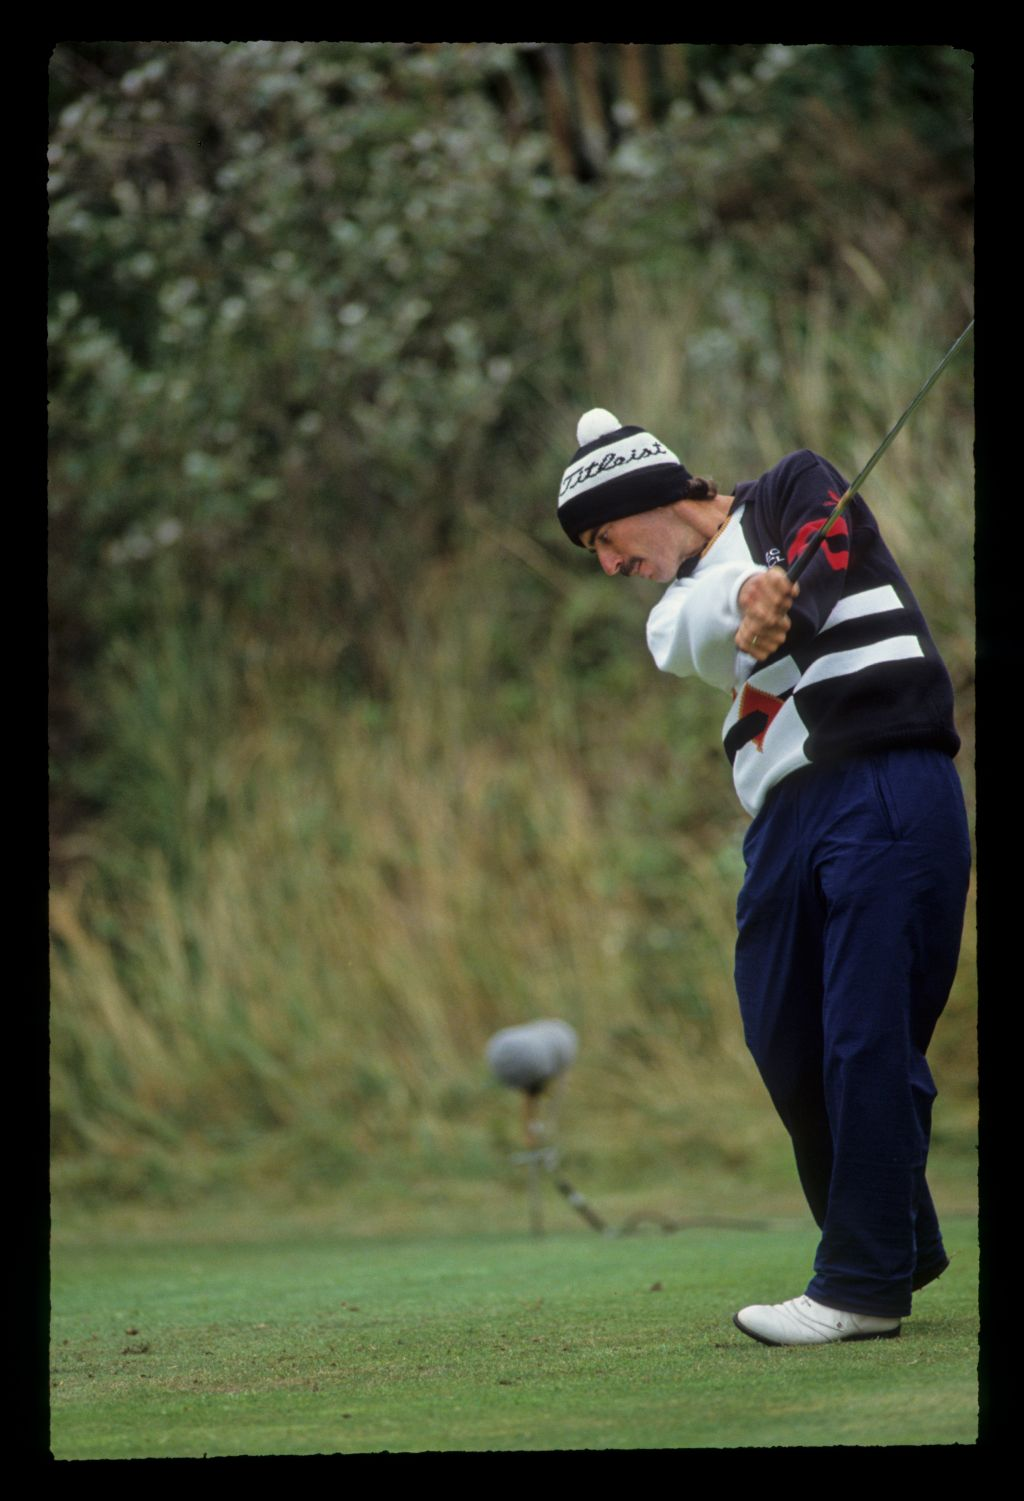 Corey Pavin just after impact on the tee during the 1991 Open Championship